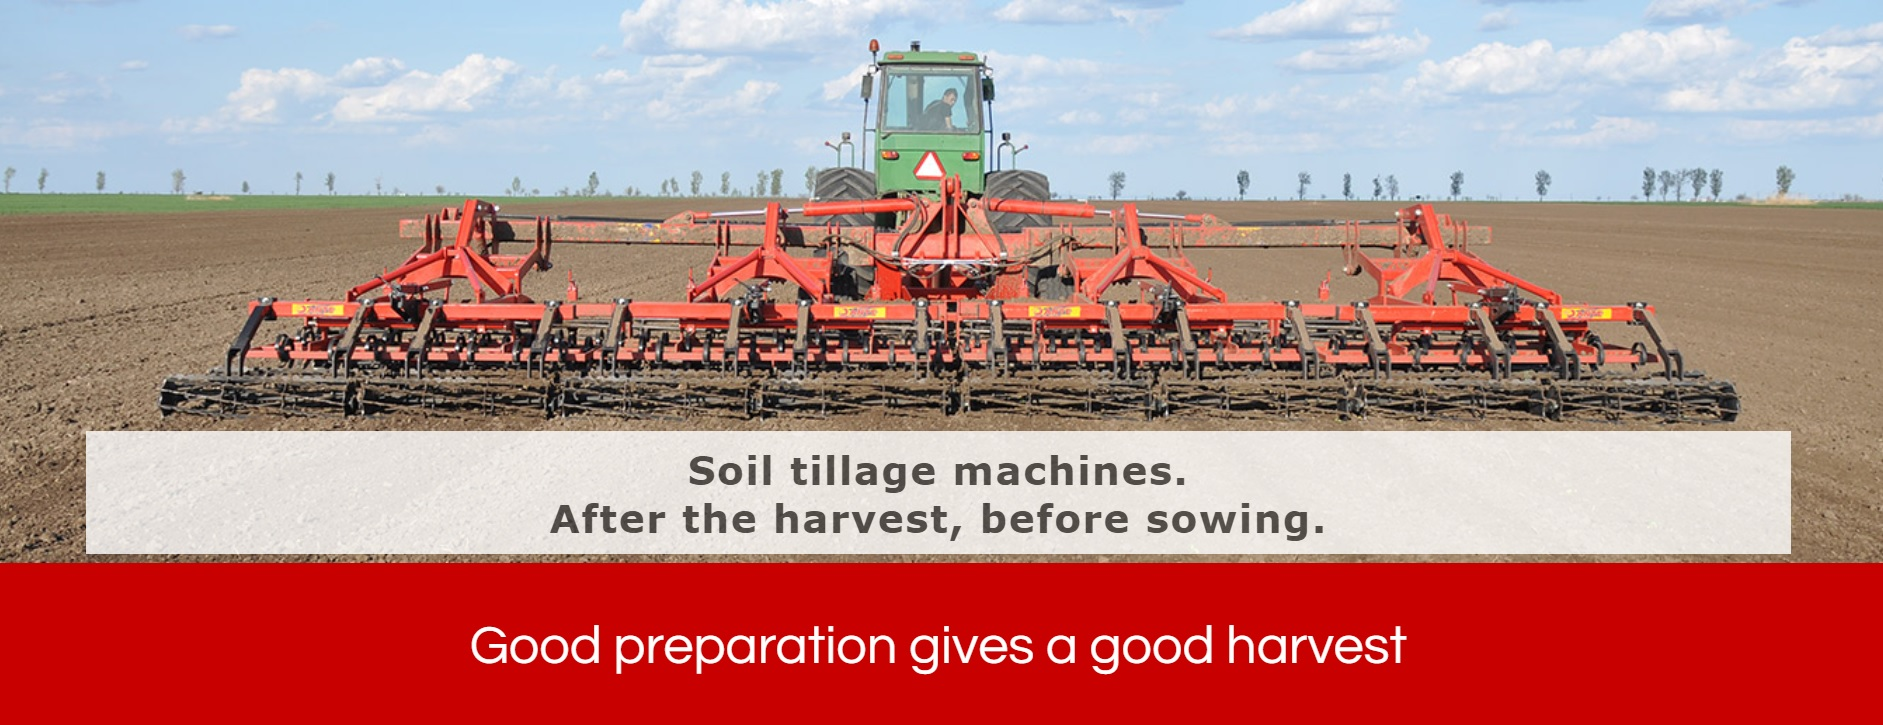 Dante Macchines for Agriculture Makes Soil Tilling Machines